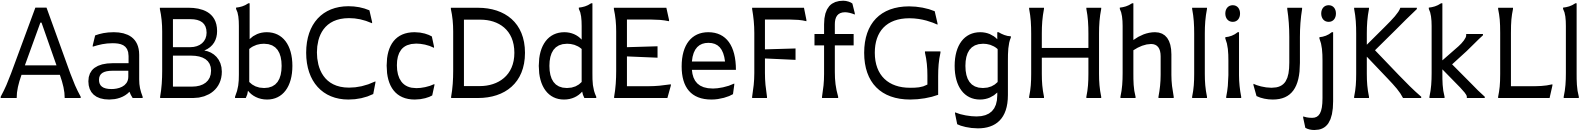 Plathorn Norm Regular Font